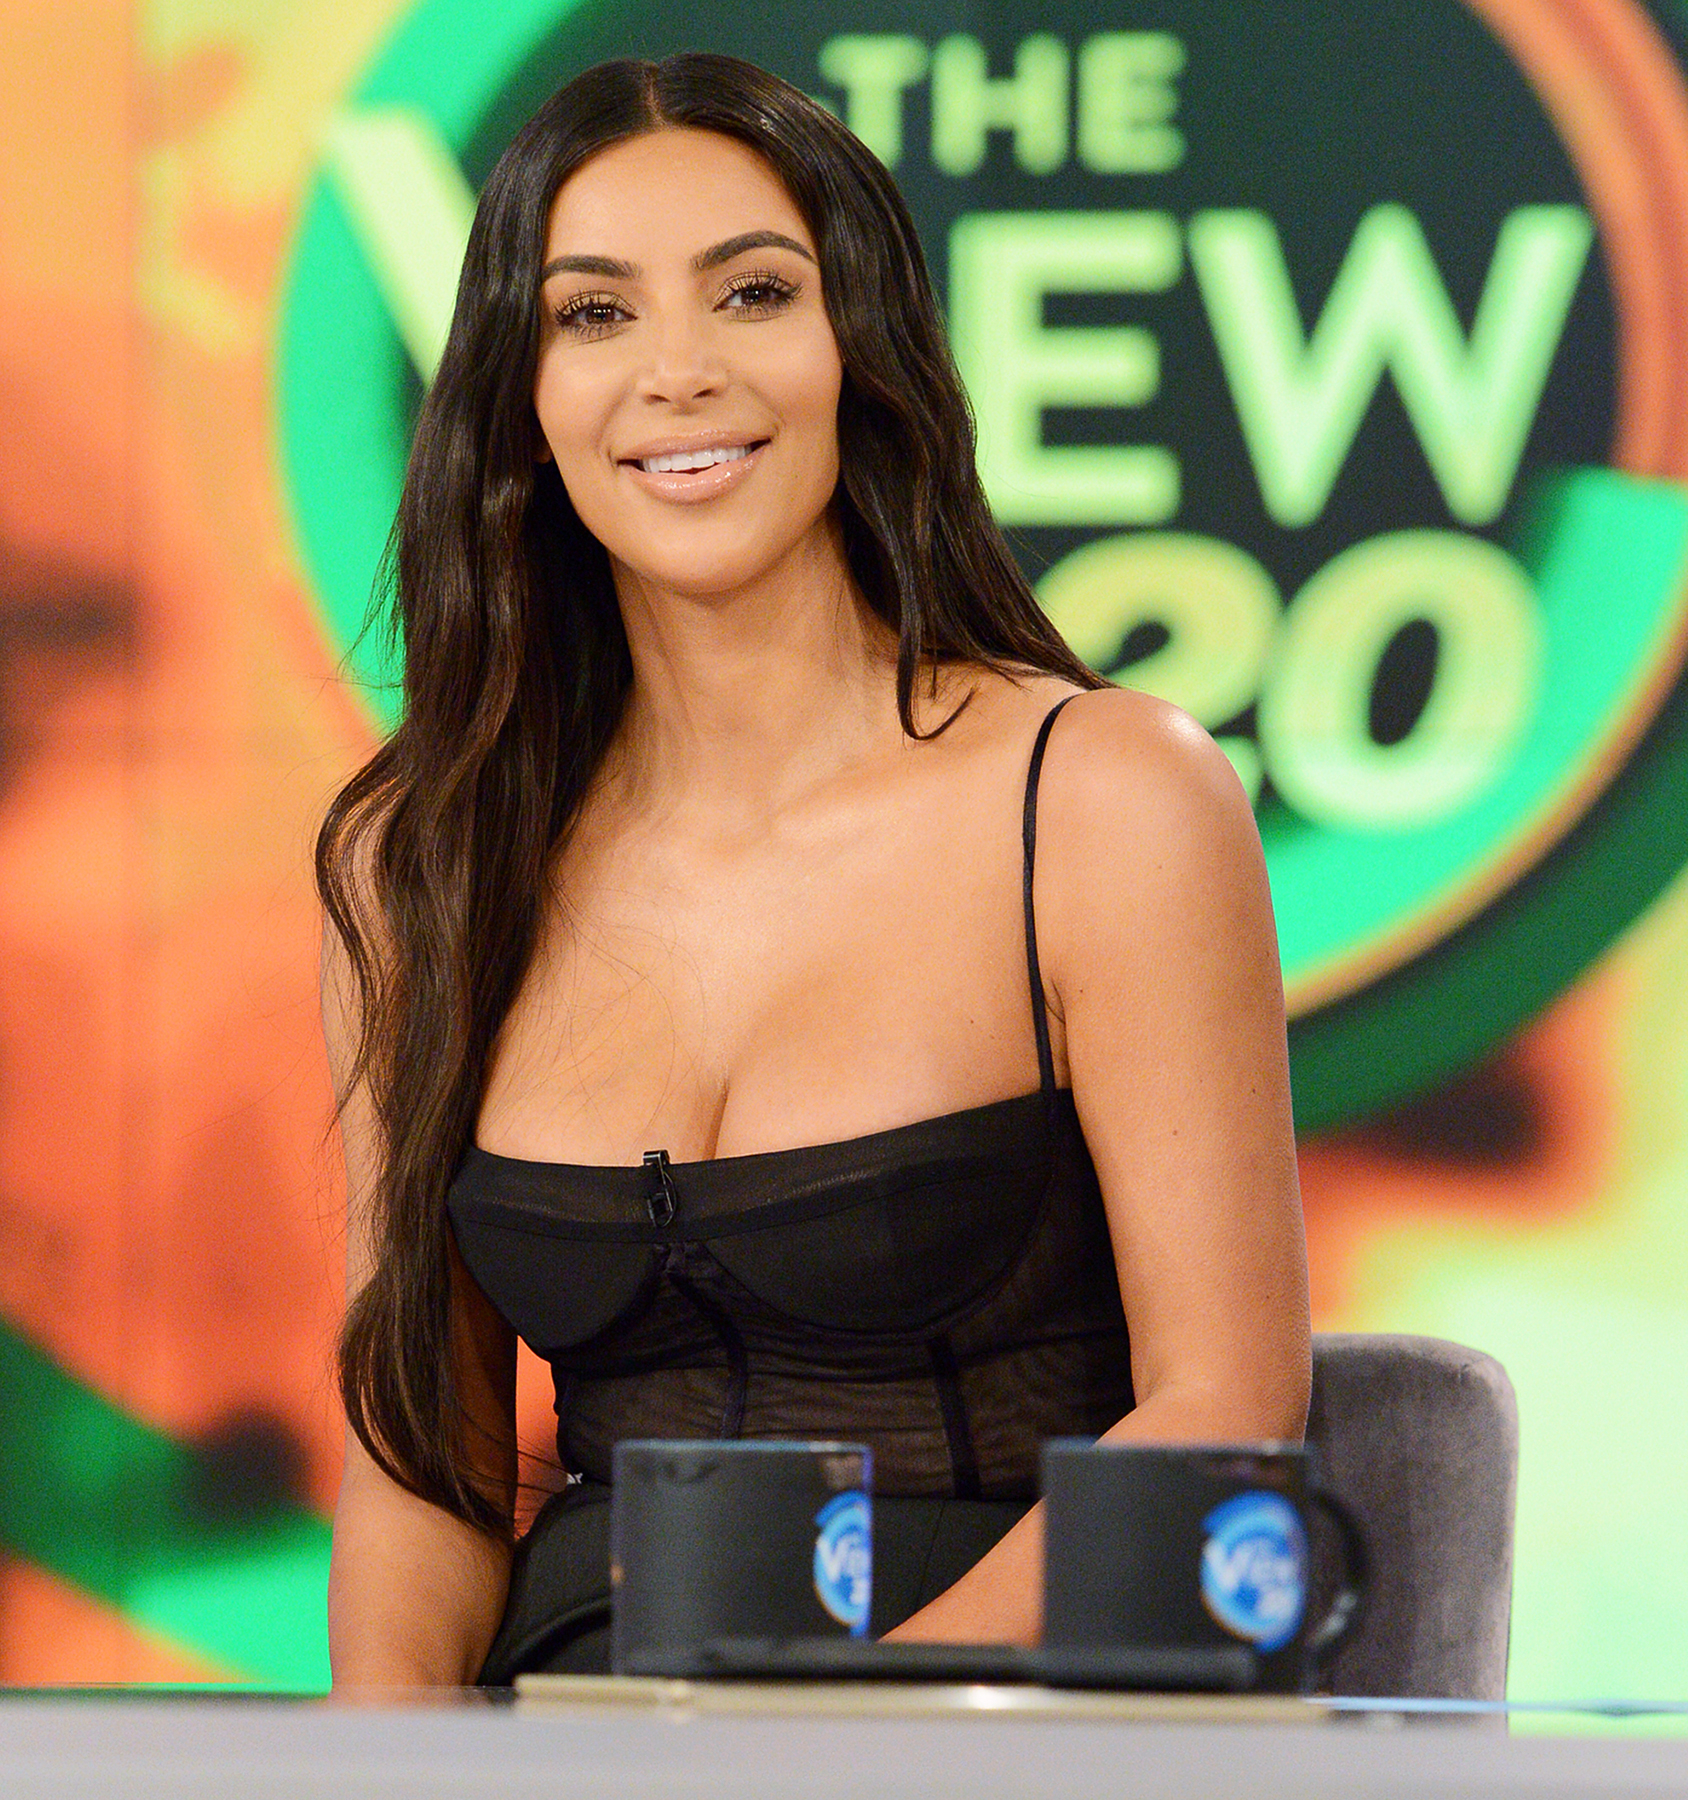 """Kim Kardashian West is the guest, Tuesday, June 20, 2017 on ABC's """"The View."""